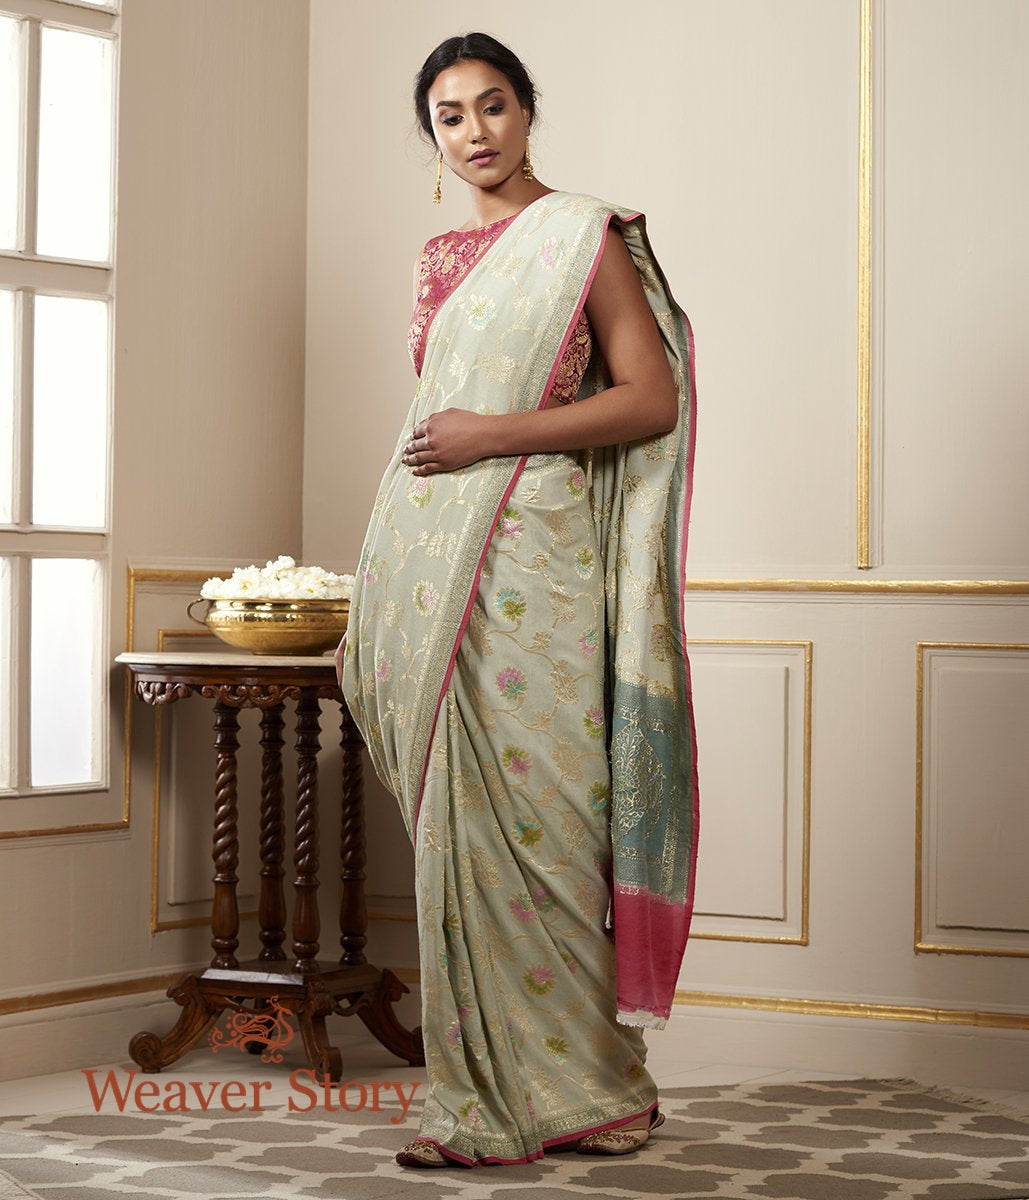 Handwoven Munga Silk Banarasi Saree with Hand Brush Dye